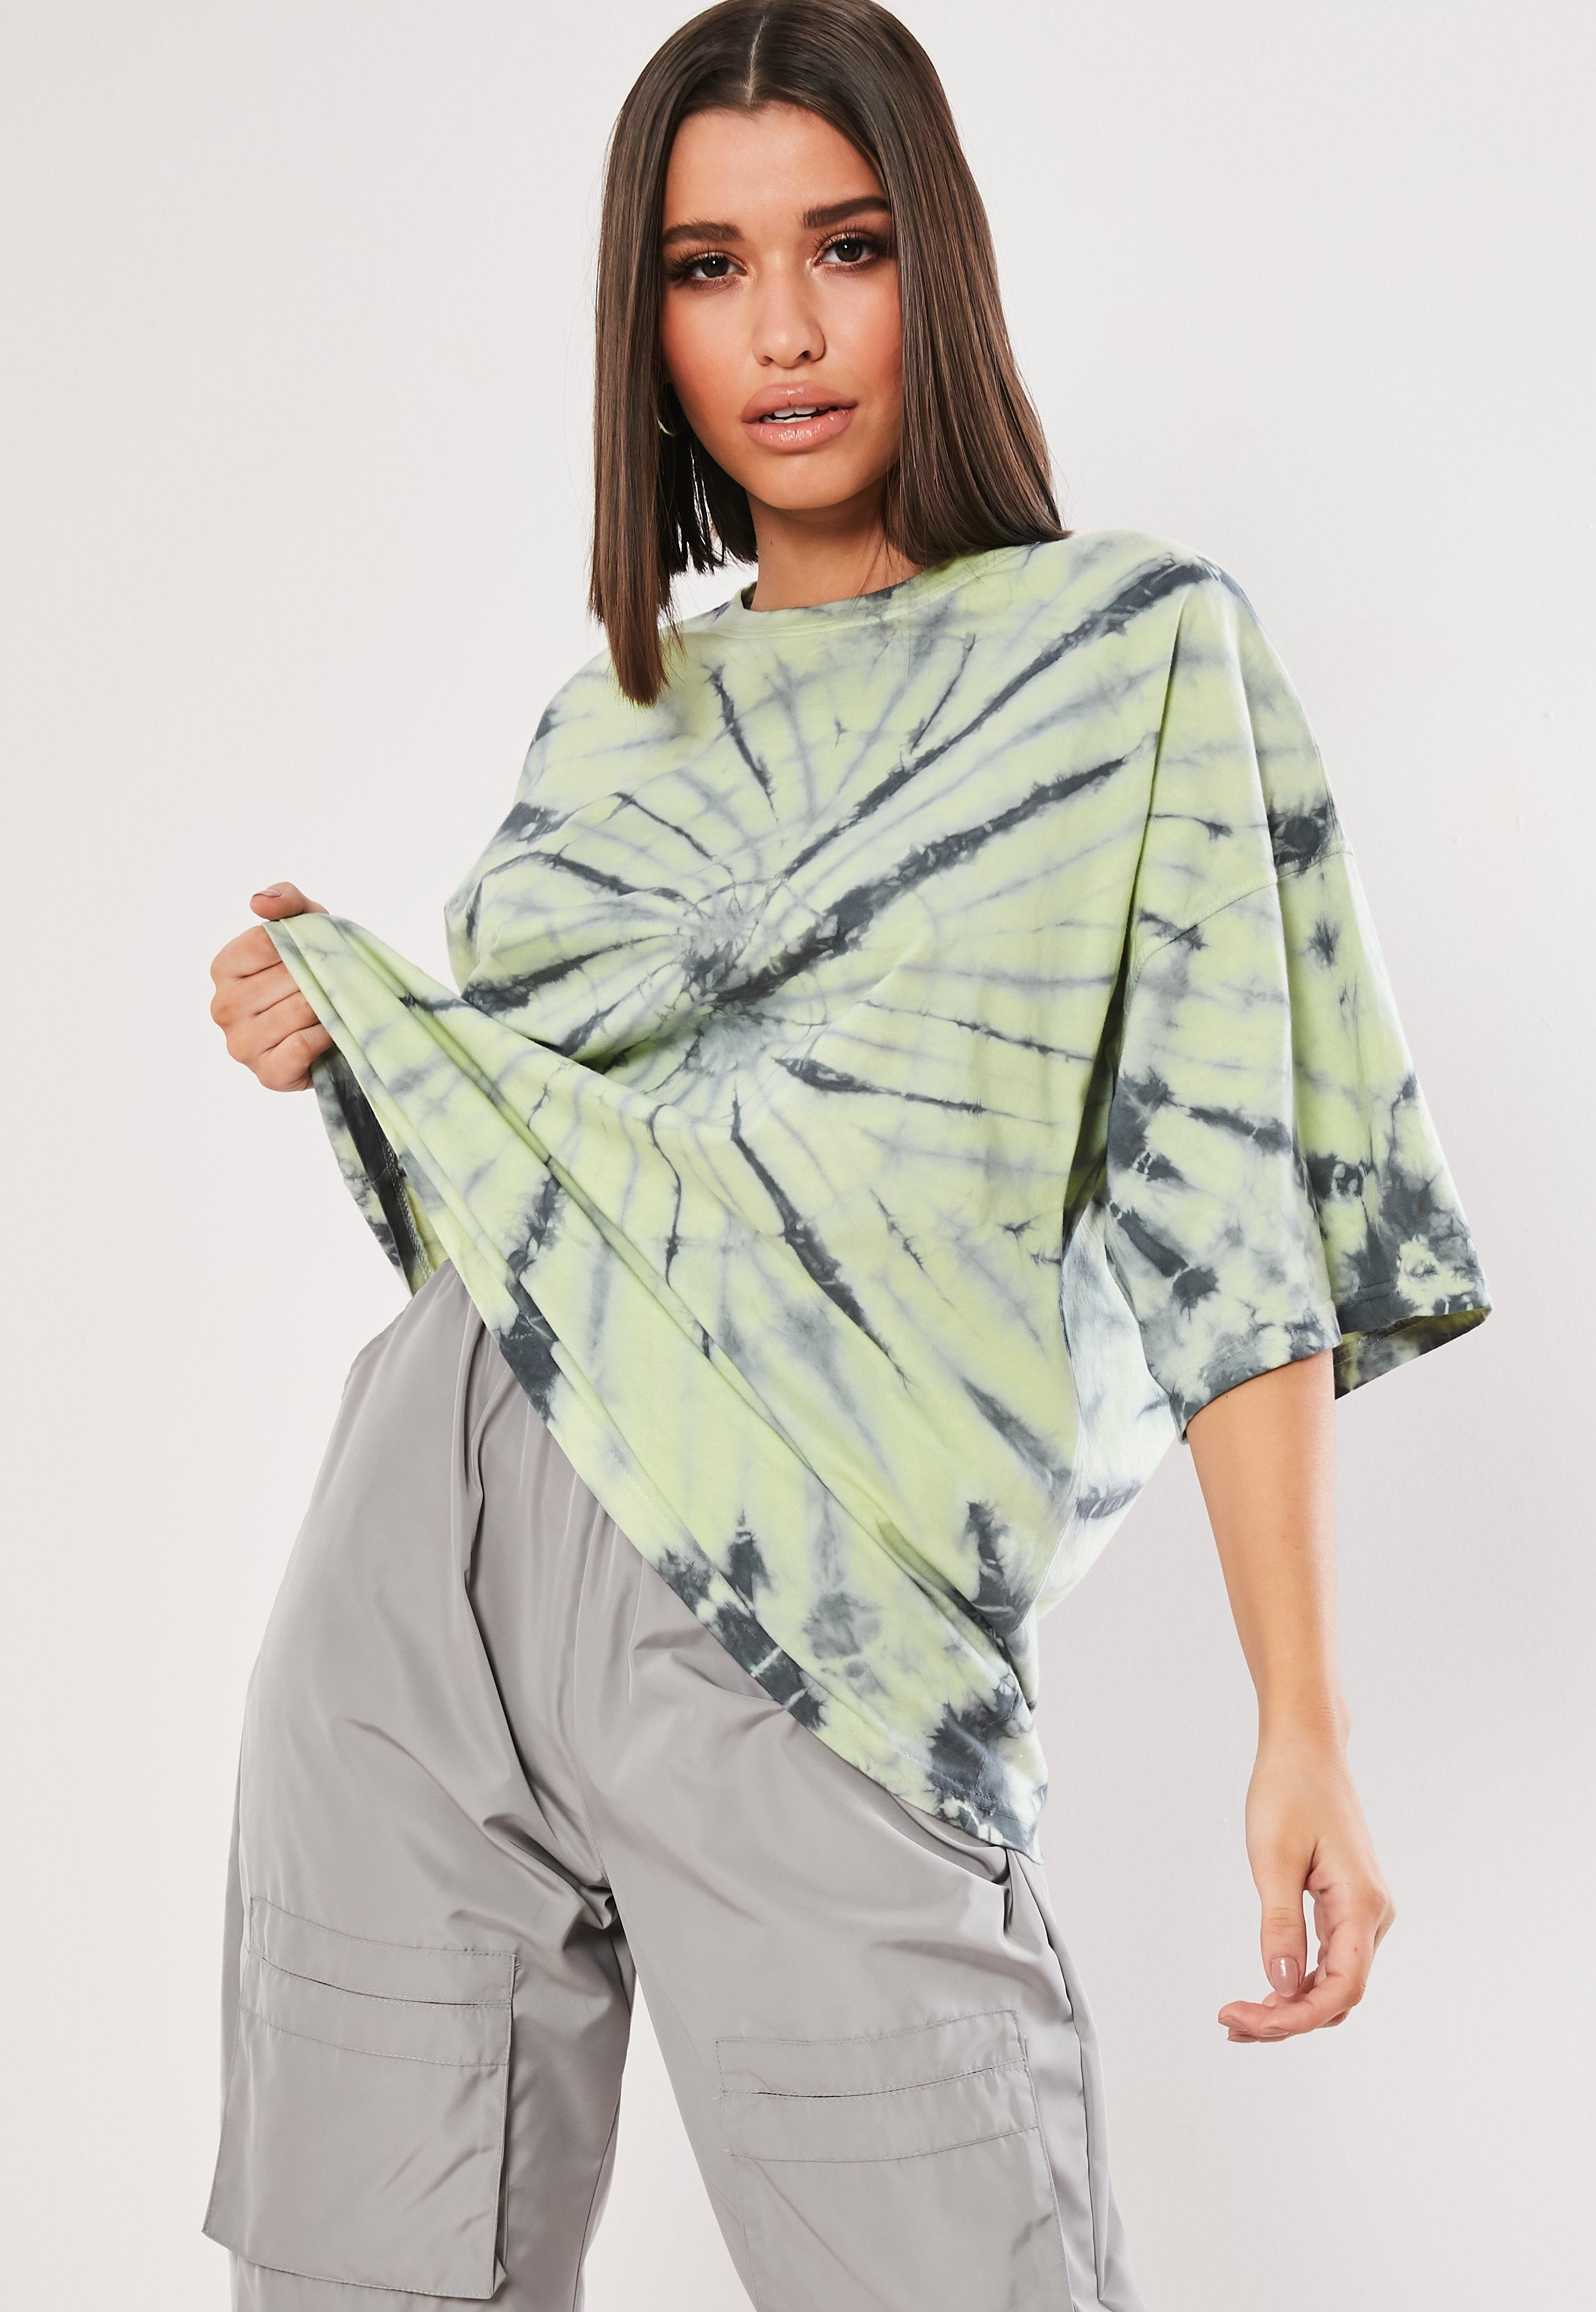 77dd0bd0ab4 Oversized Tops, Women's Loose Tops - Missguided